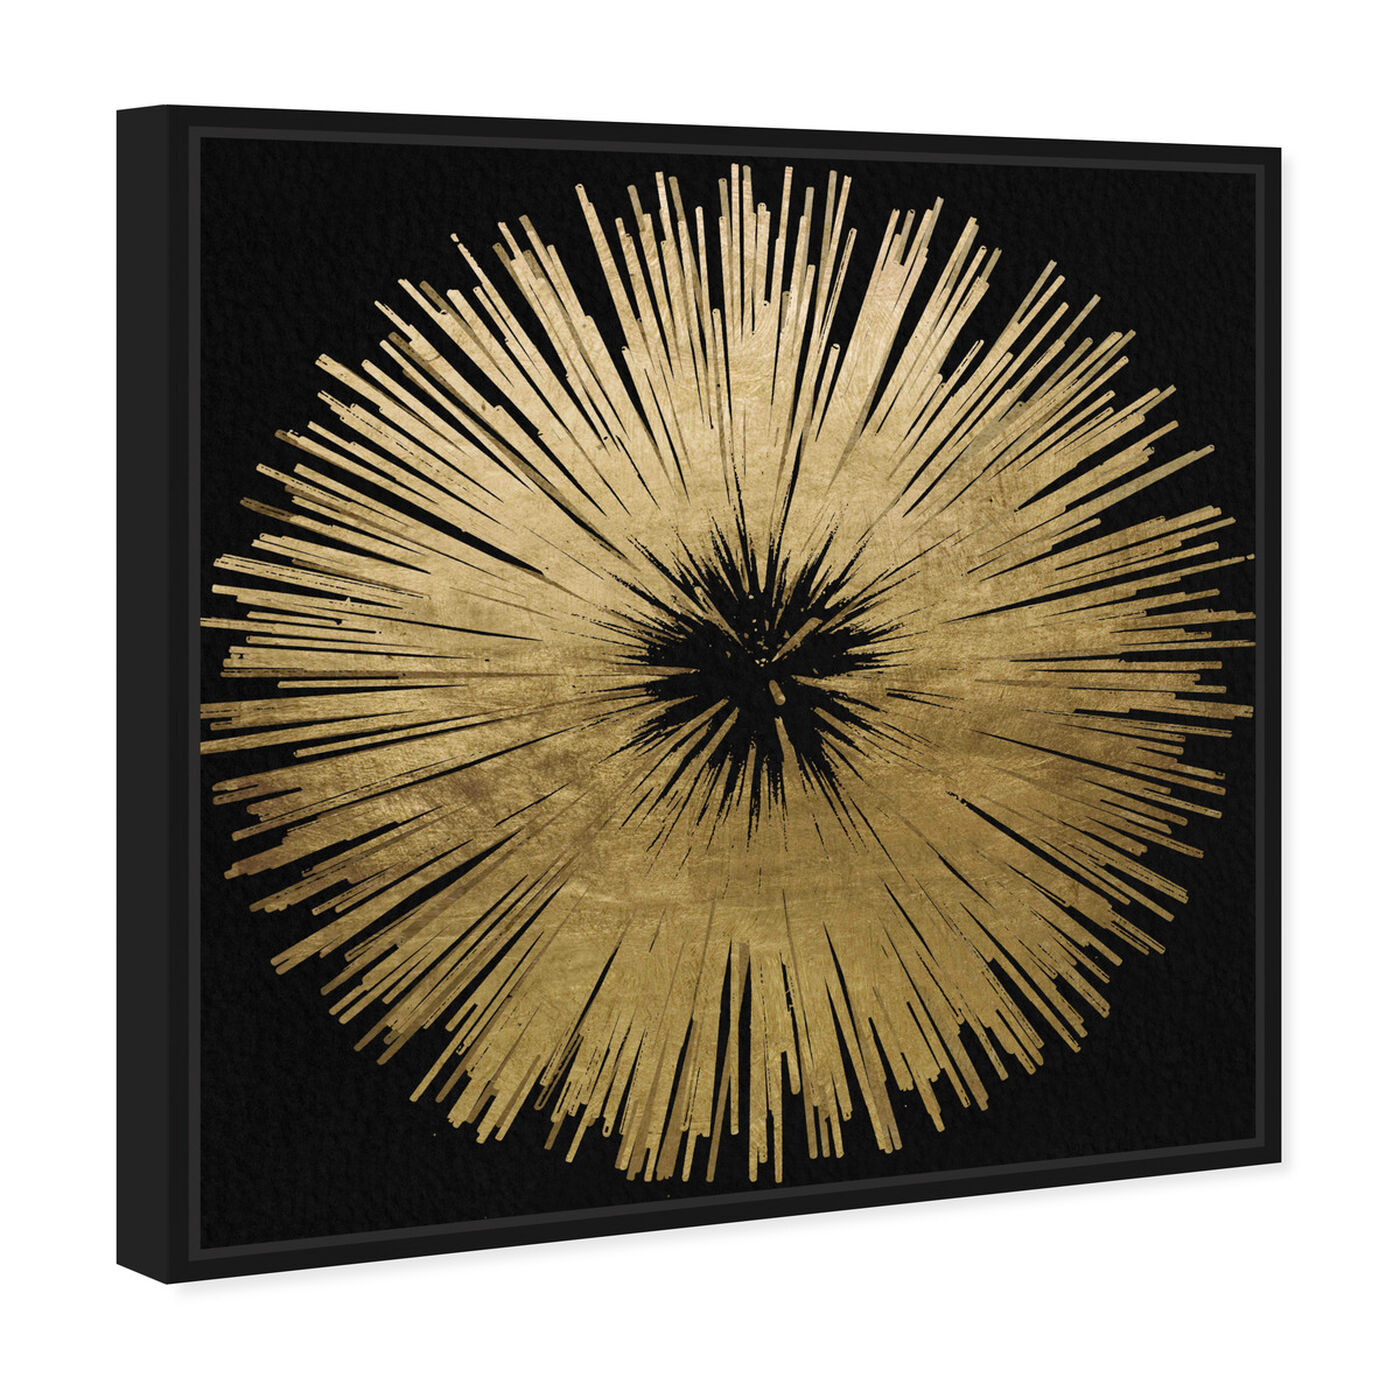 Angled view of Sunburst Golden Night featuring abstract and paint art.